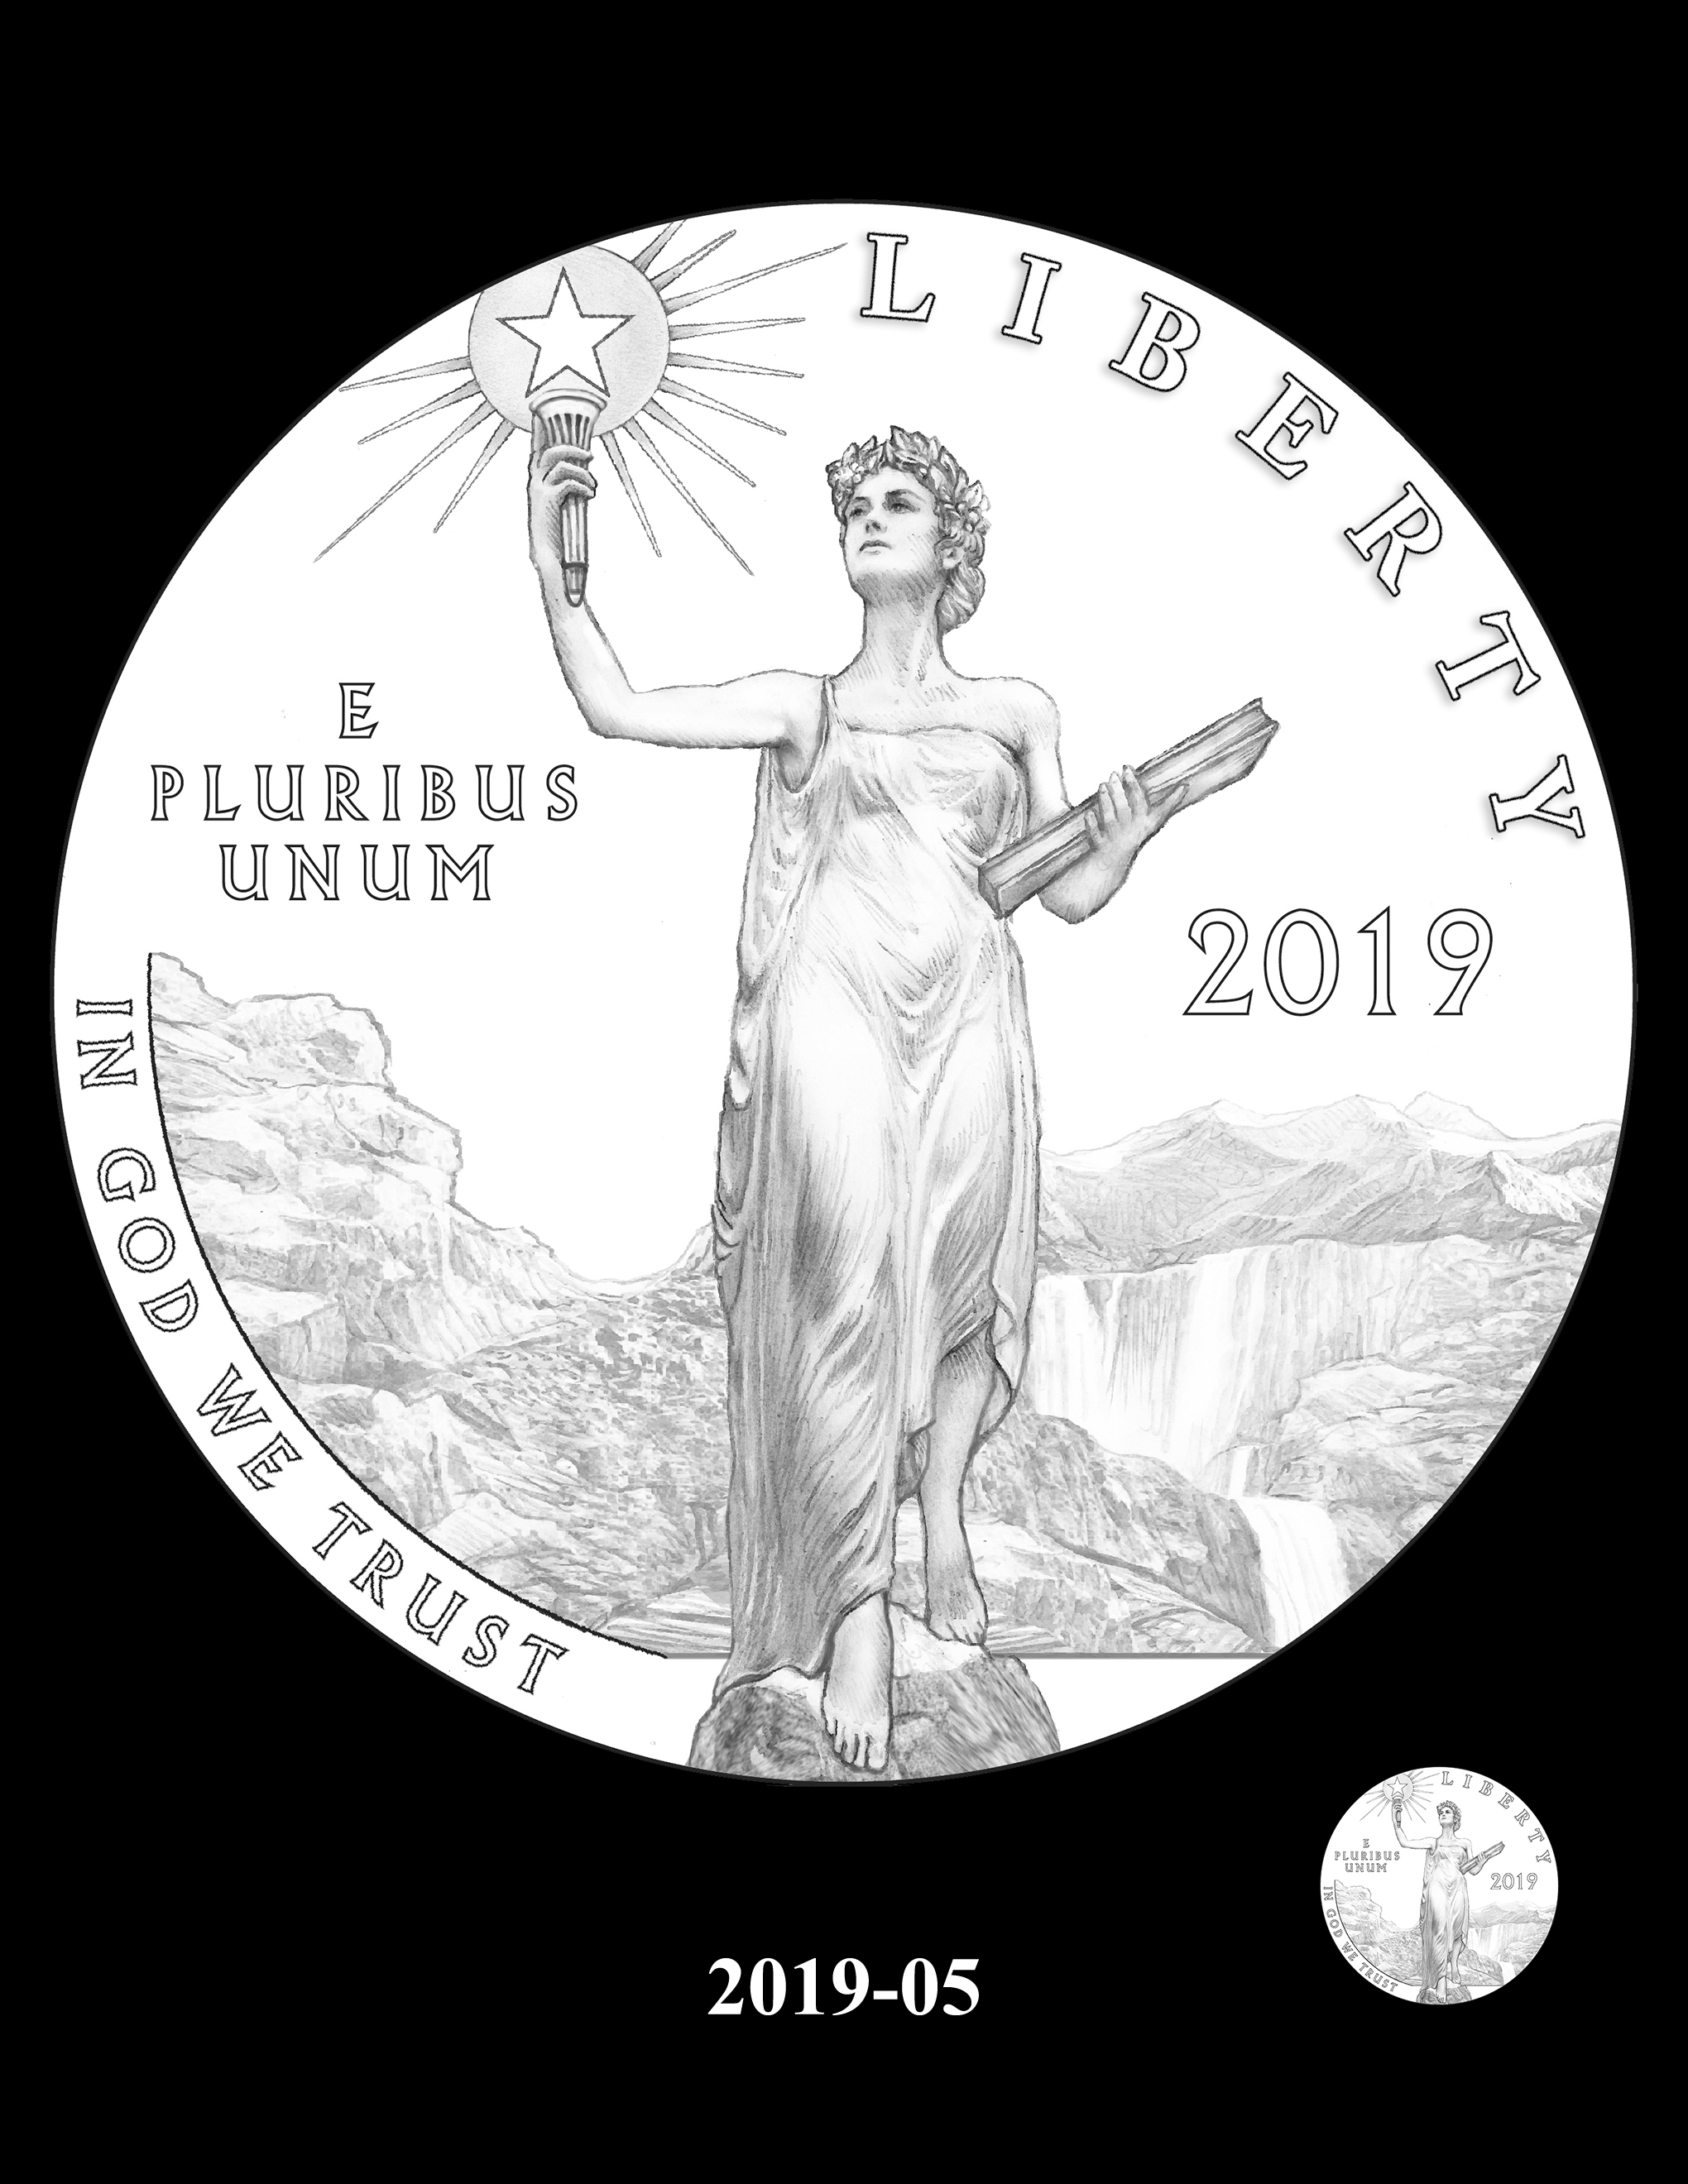 SET05-2019-05 - 2018 2019 and 2020 American Eagle Platinum Proof Program